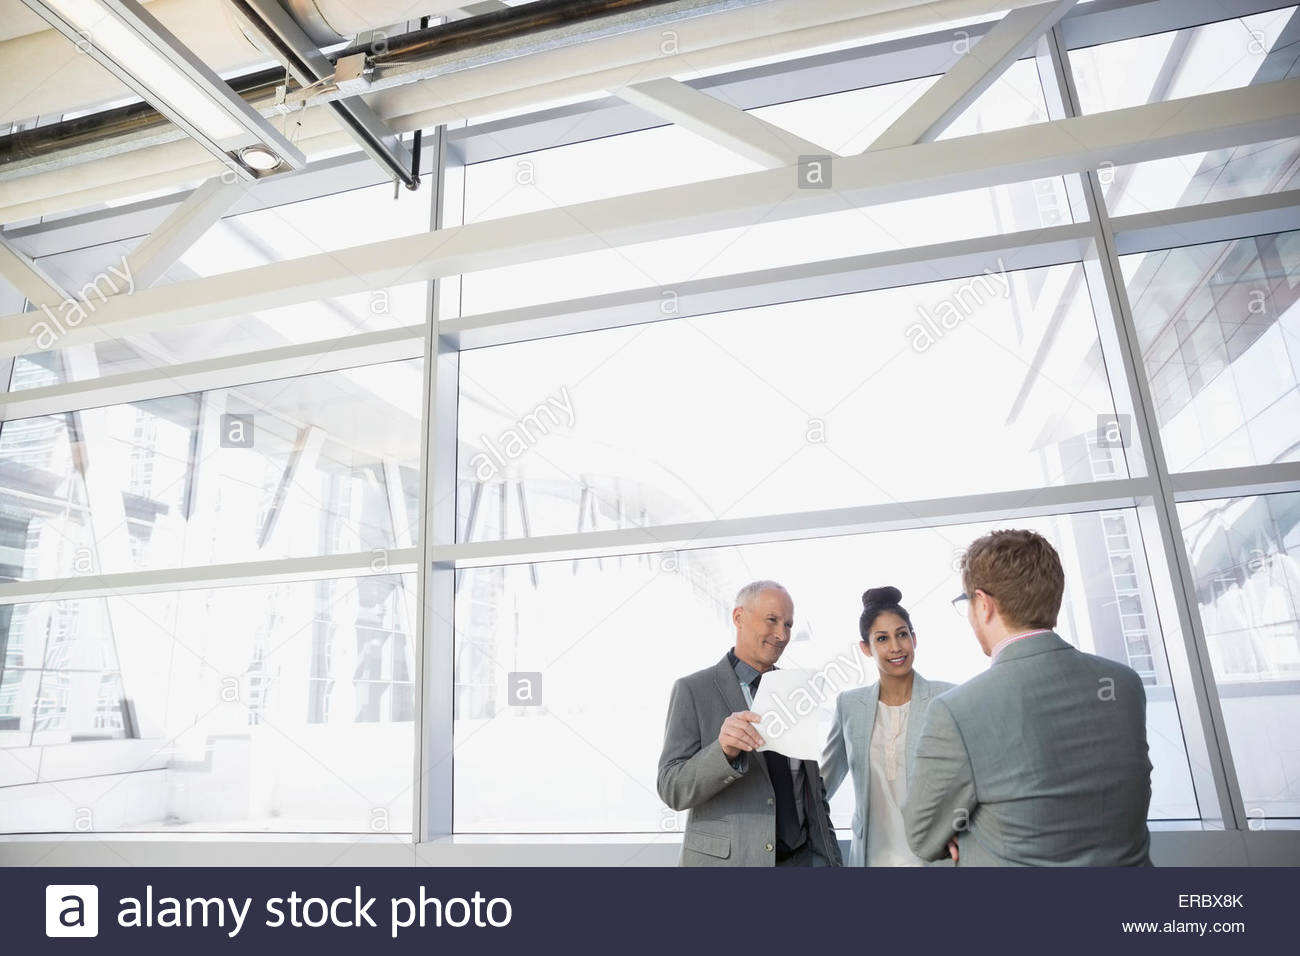 Business people talking in modern lobby - Stock Image